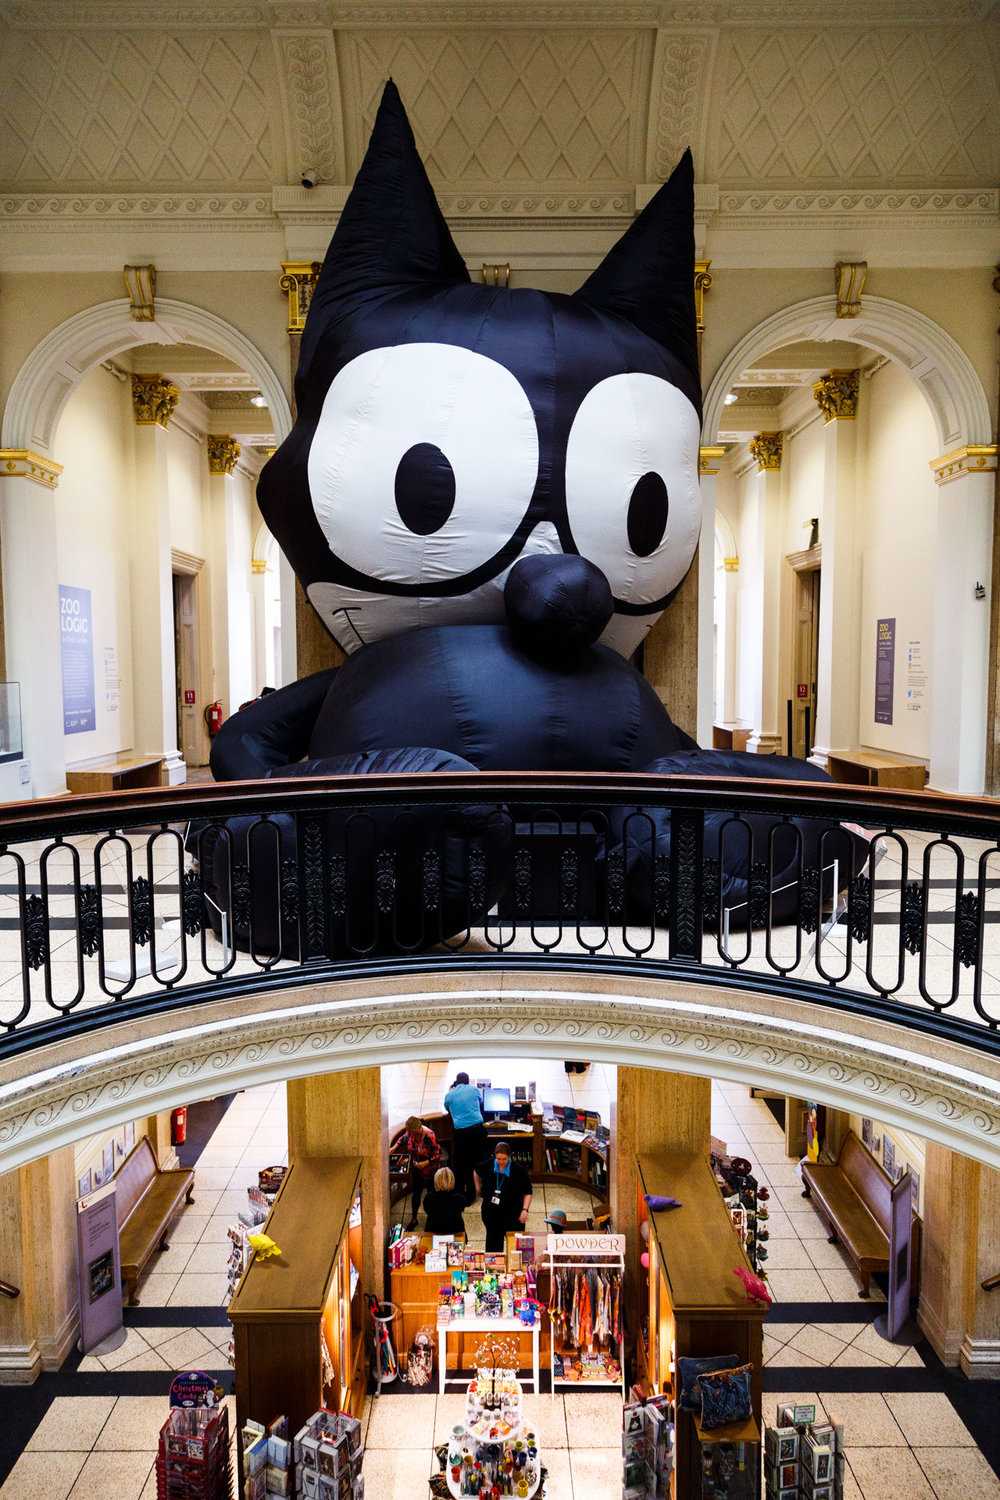 October - Mark Leckey's big inflatable Felix the Cat at the Walker Gallery. On this day I visited various Biennial locations with an old college friend.